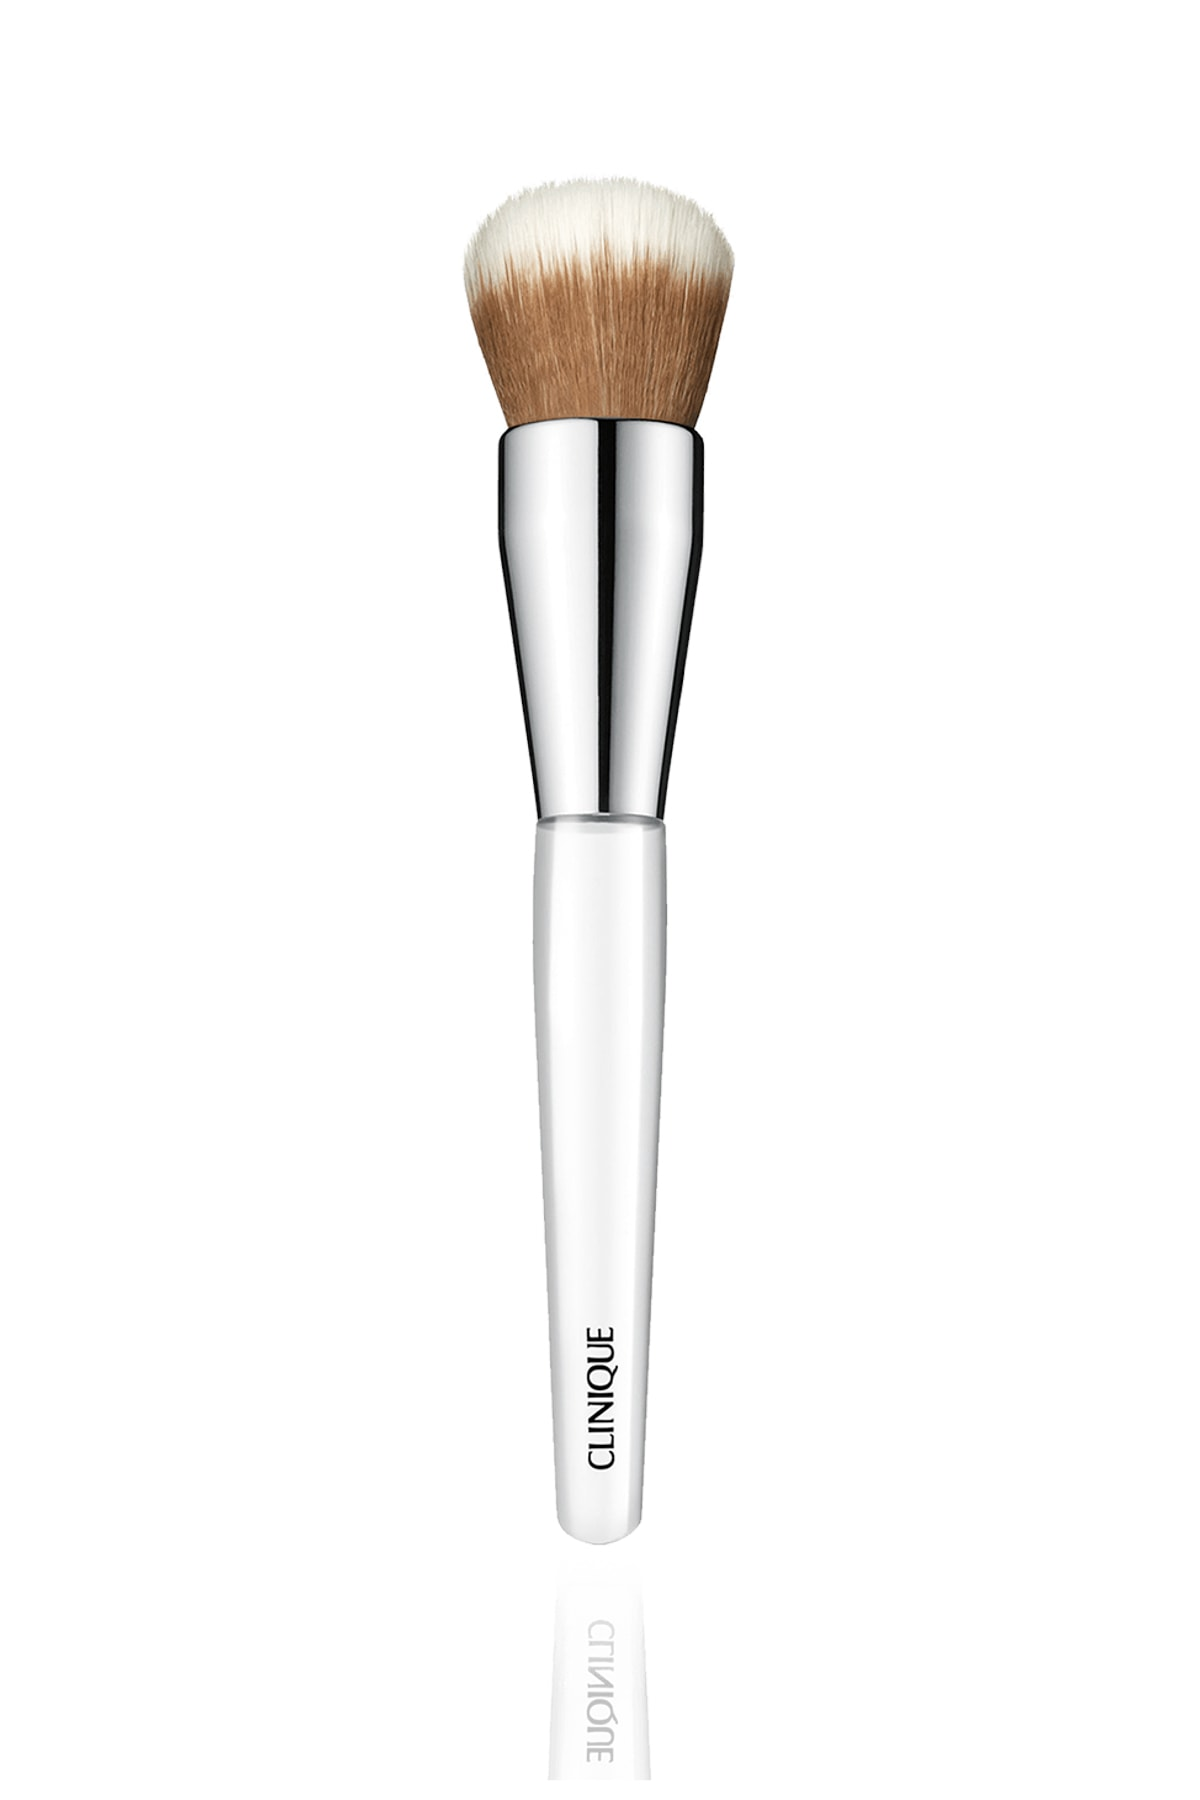 Clinique Fondöten Fırçası - Foundation Buff Brush 020714838928 1